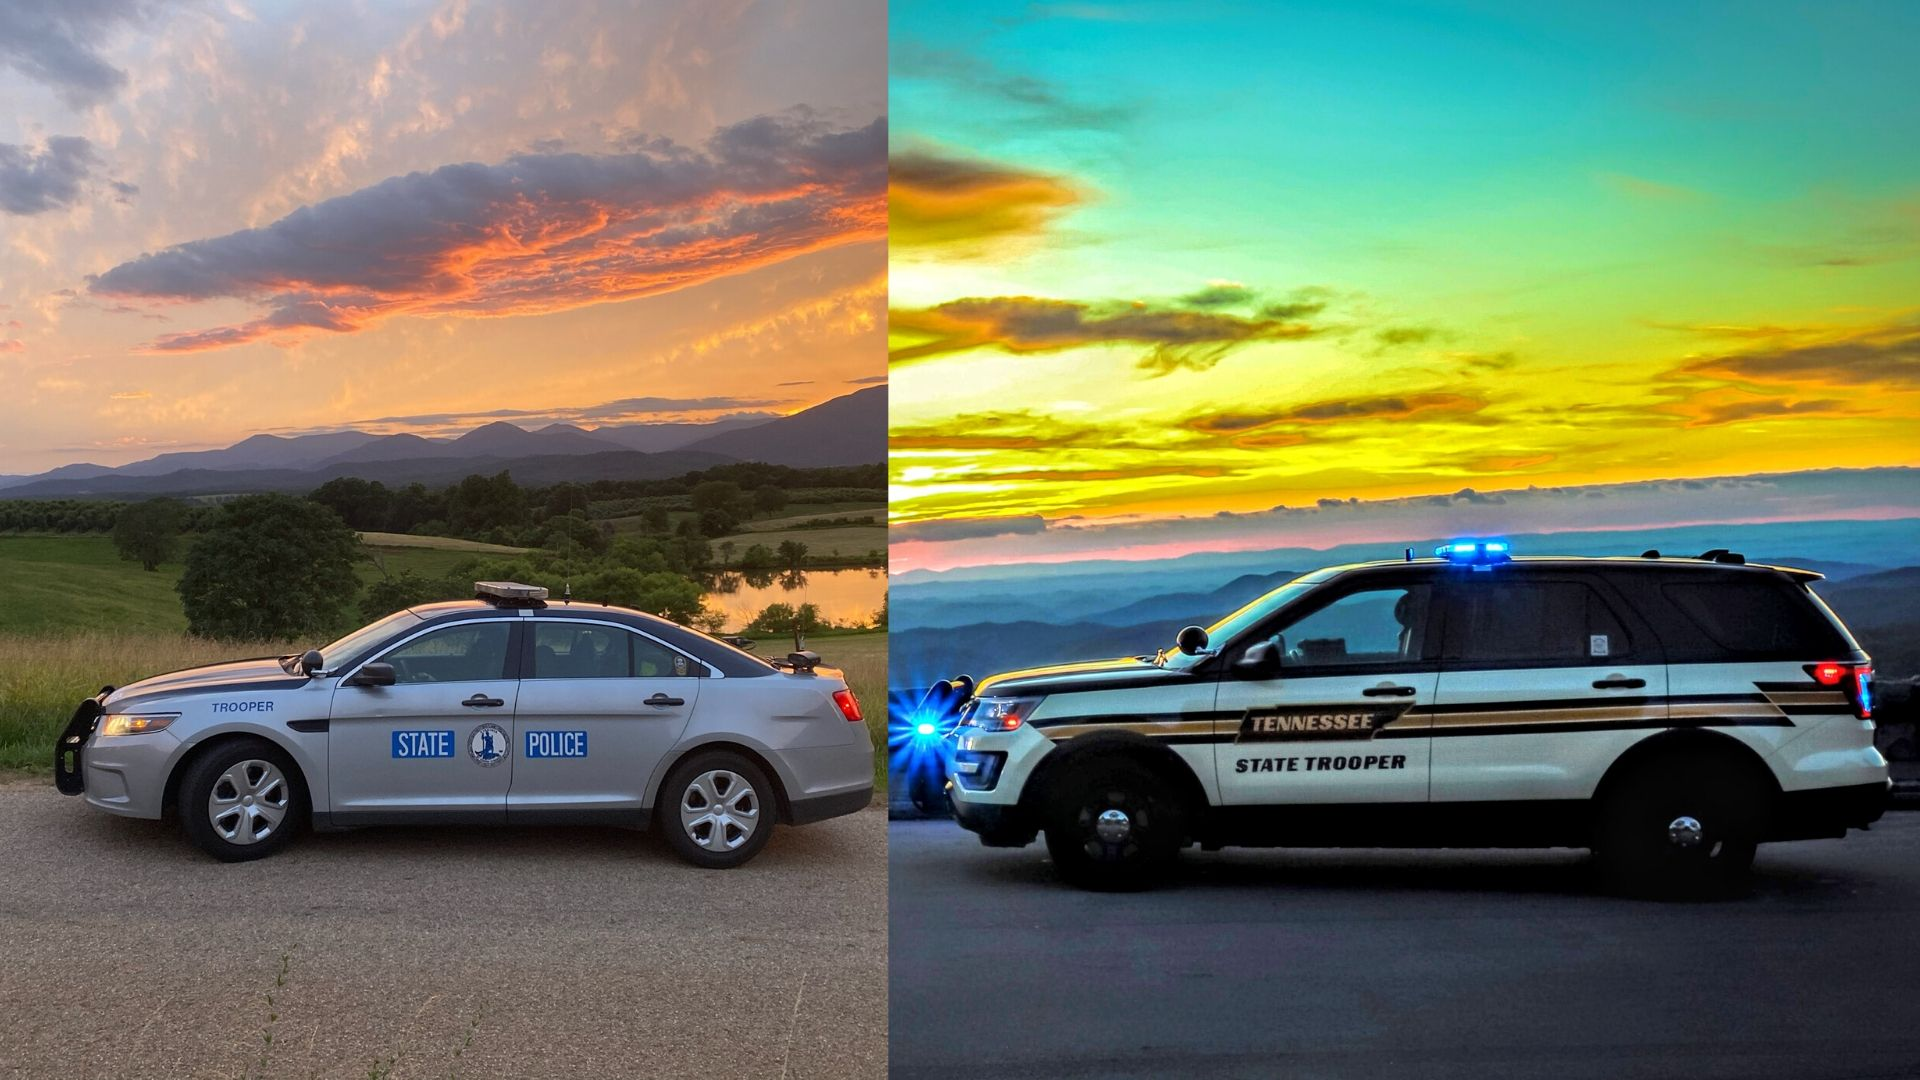 Tennessee Highway Patrol Virginia State Police Compete For Best Looking Cruiser Award Wjhl Tri Cities News Weather